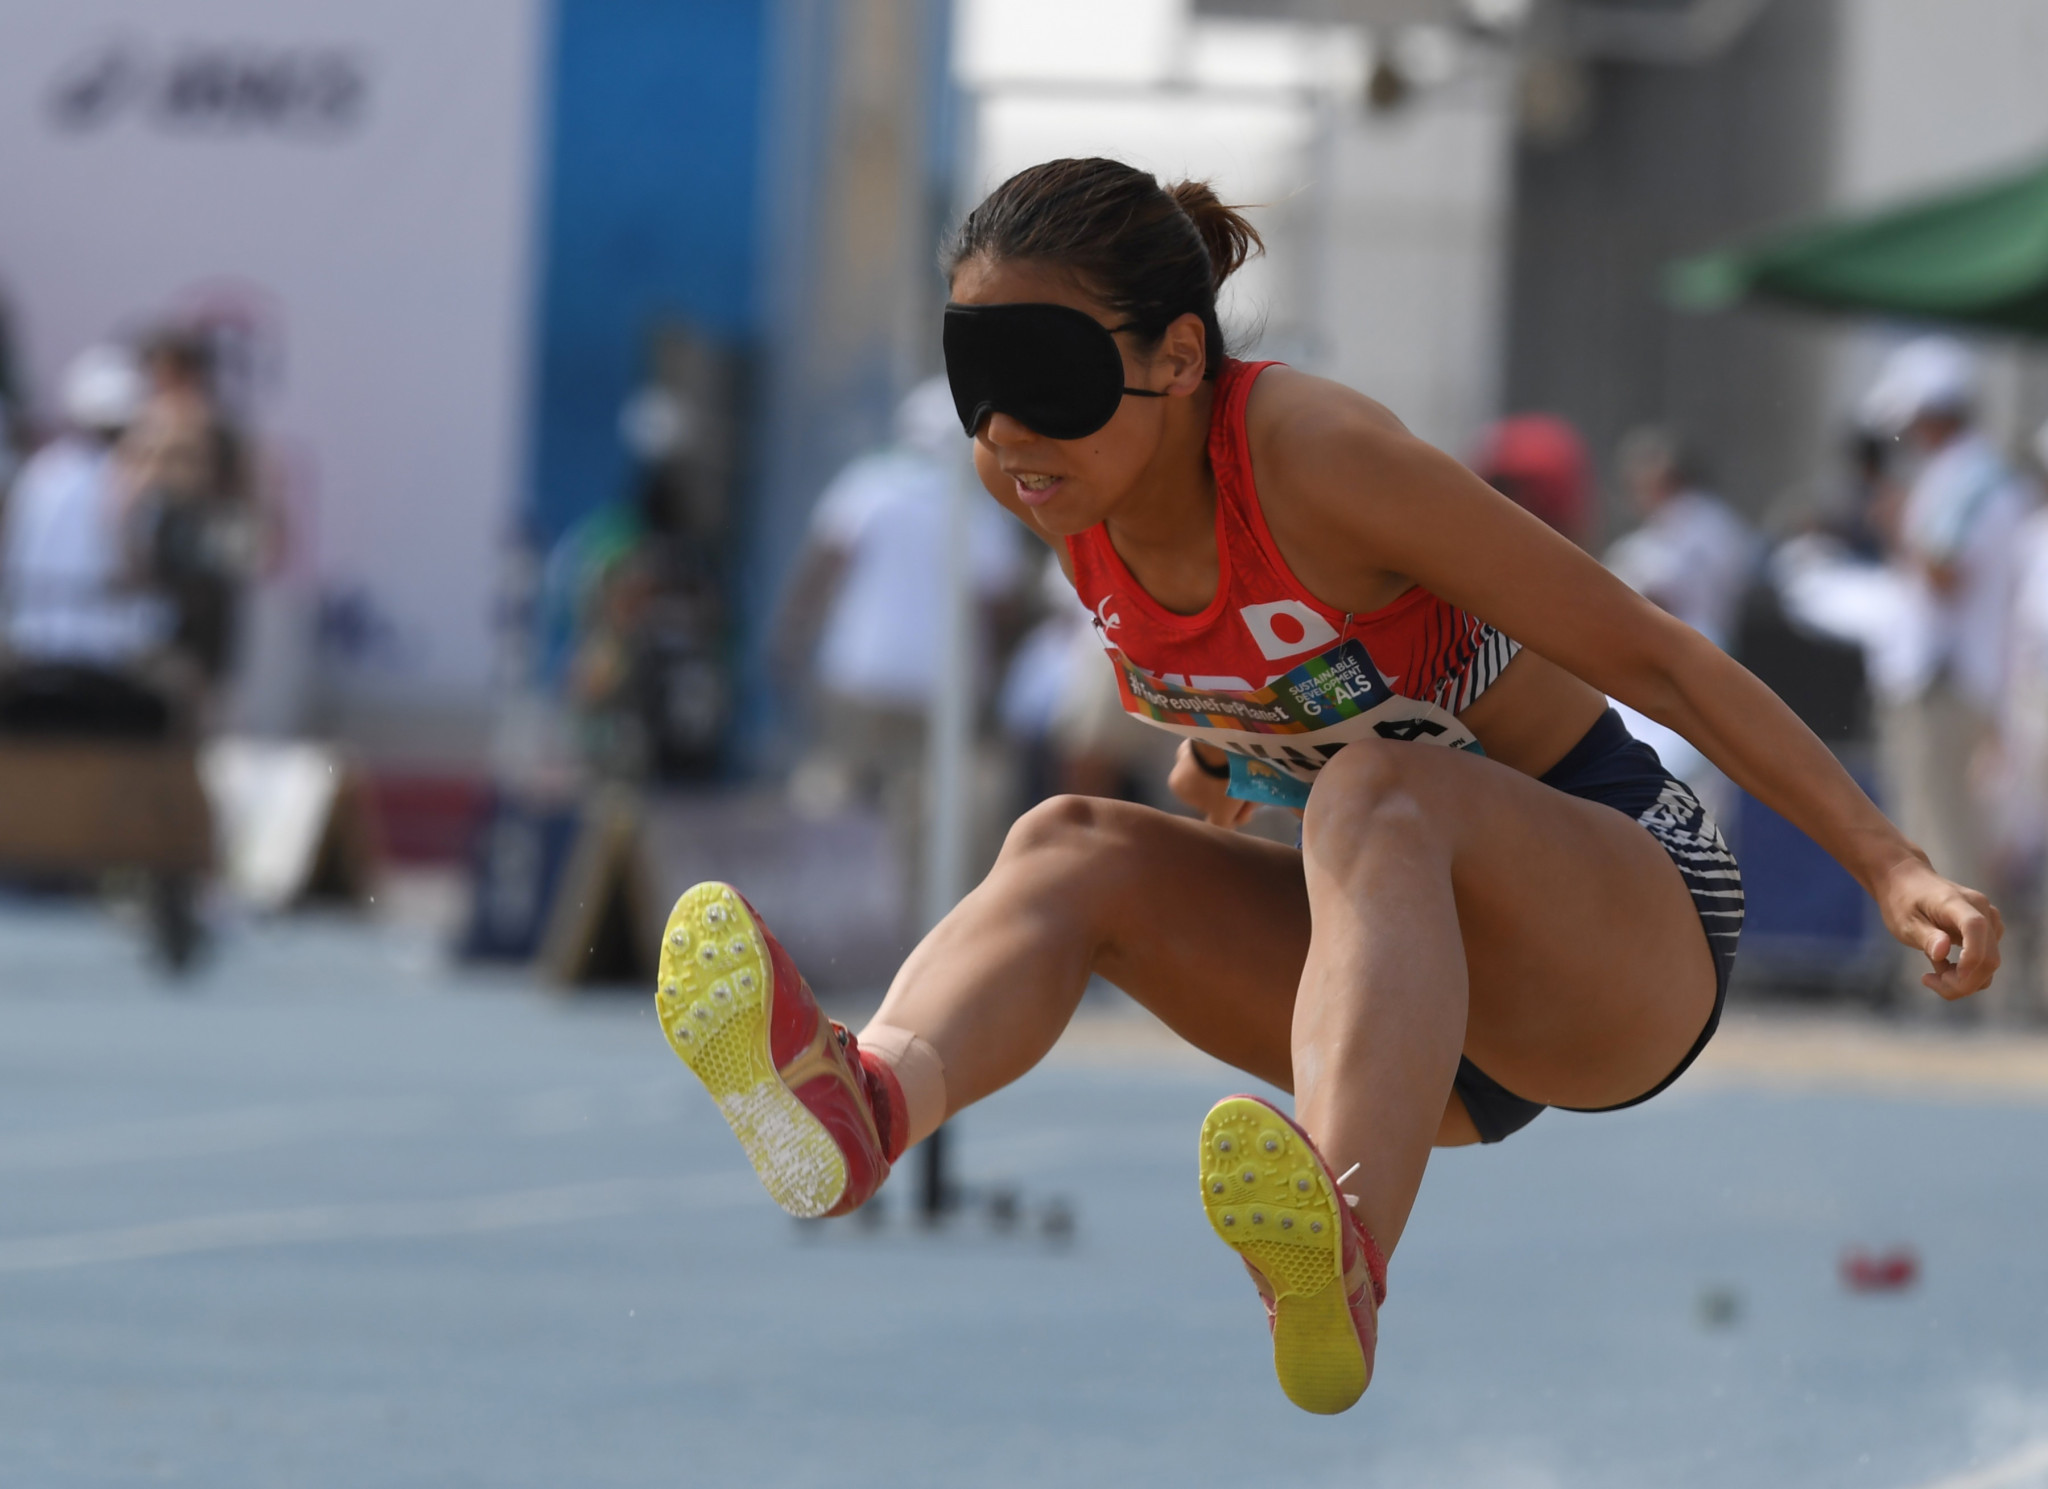 Japanese long jumper Chiaki Takada attended the event ©Getty Images